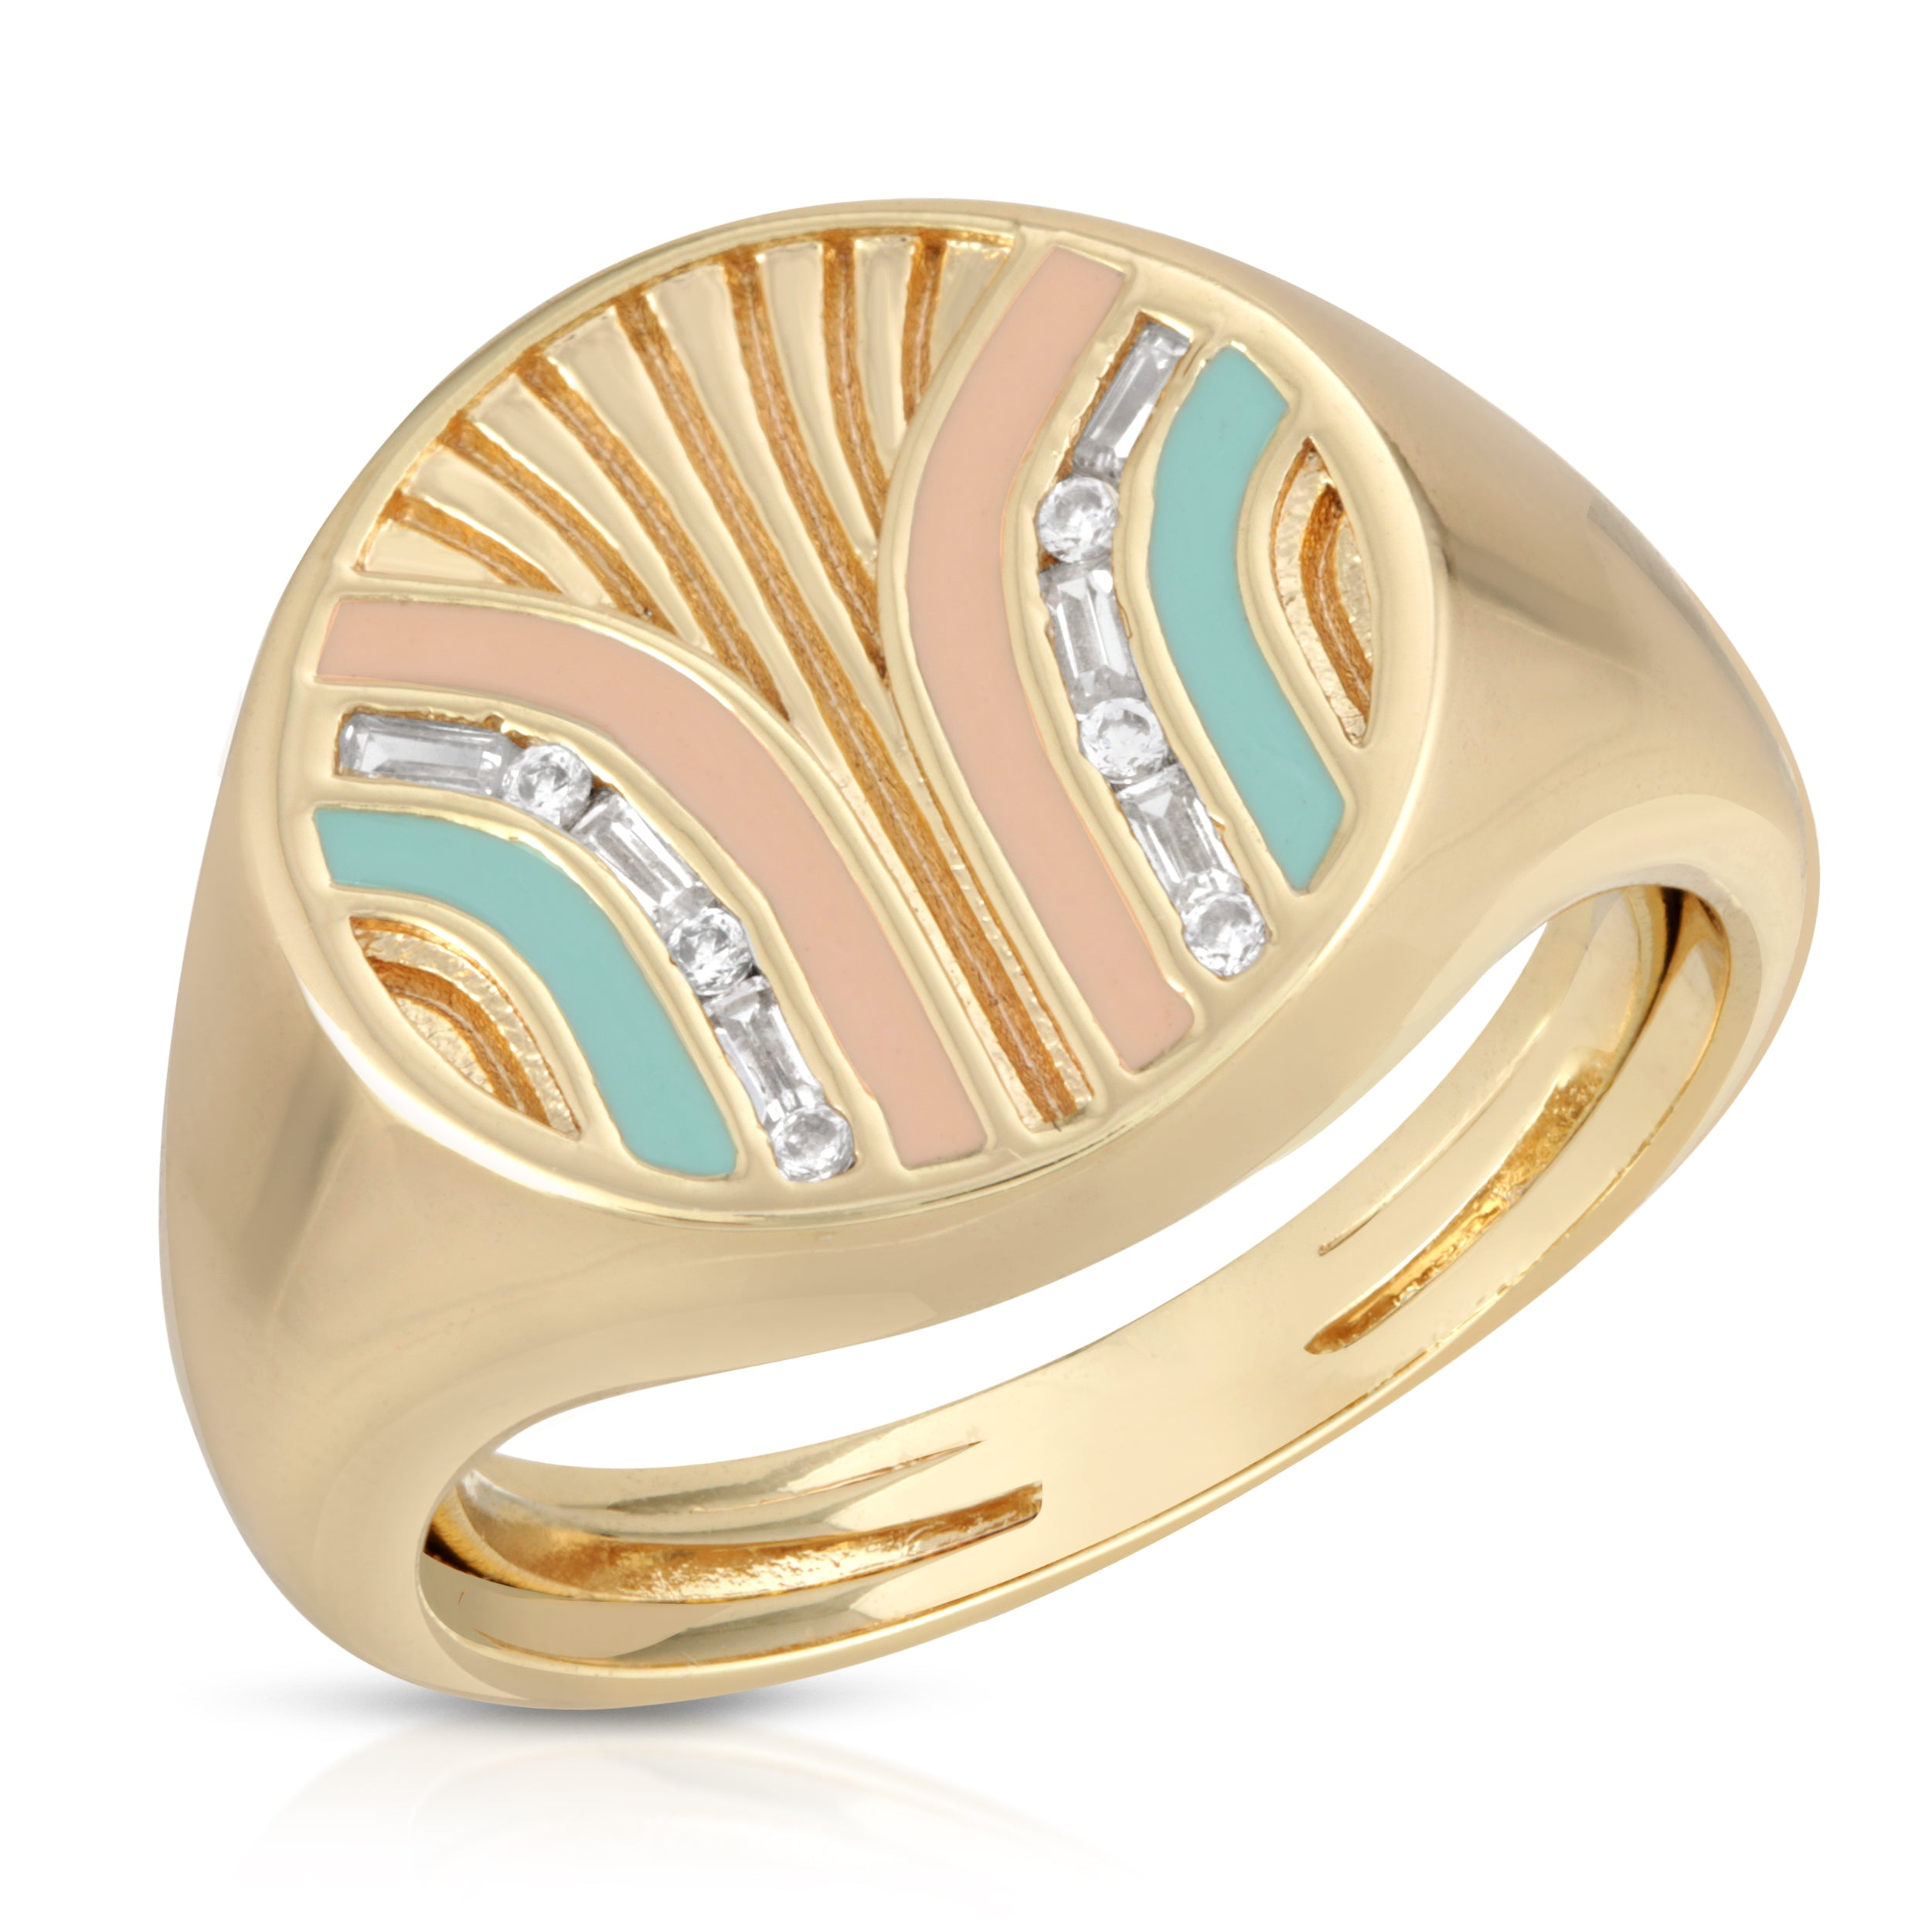 South Beach Signet Ring- Coral/Mint